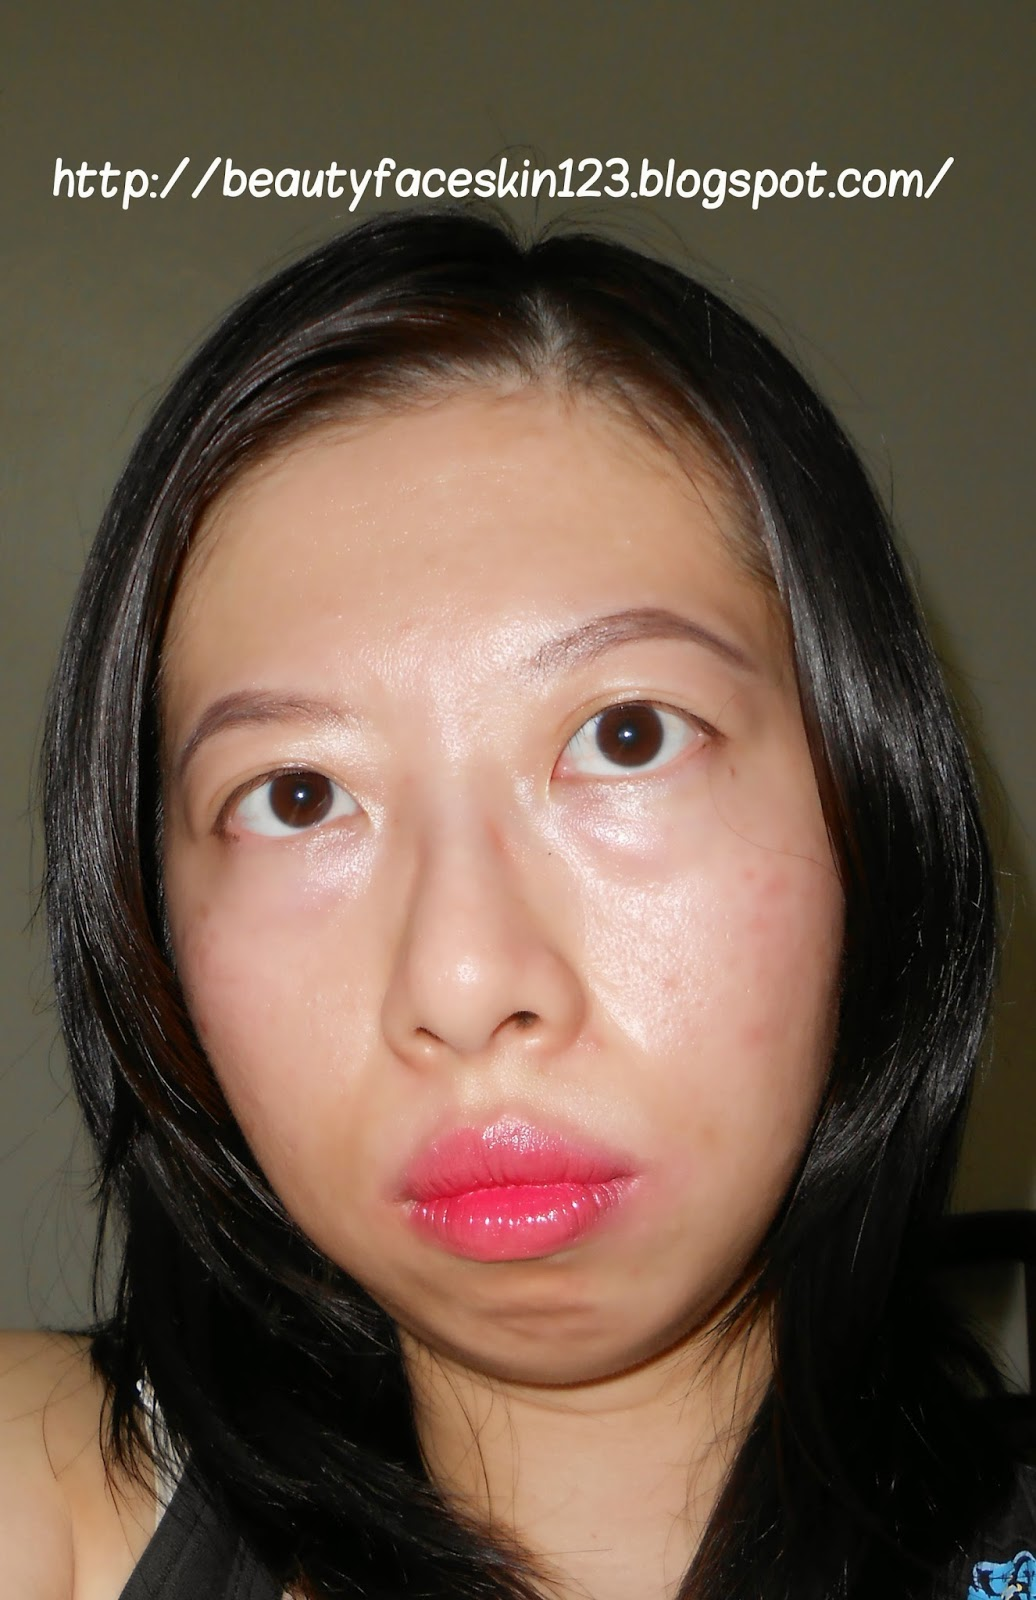 MAKEUP: KOREAN NUDE GLOWY MAKEUP&GRADIENT LIPS 2014